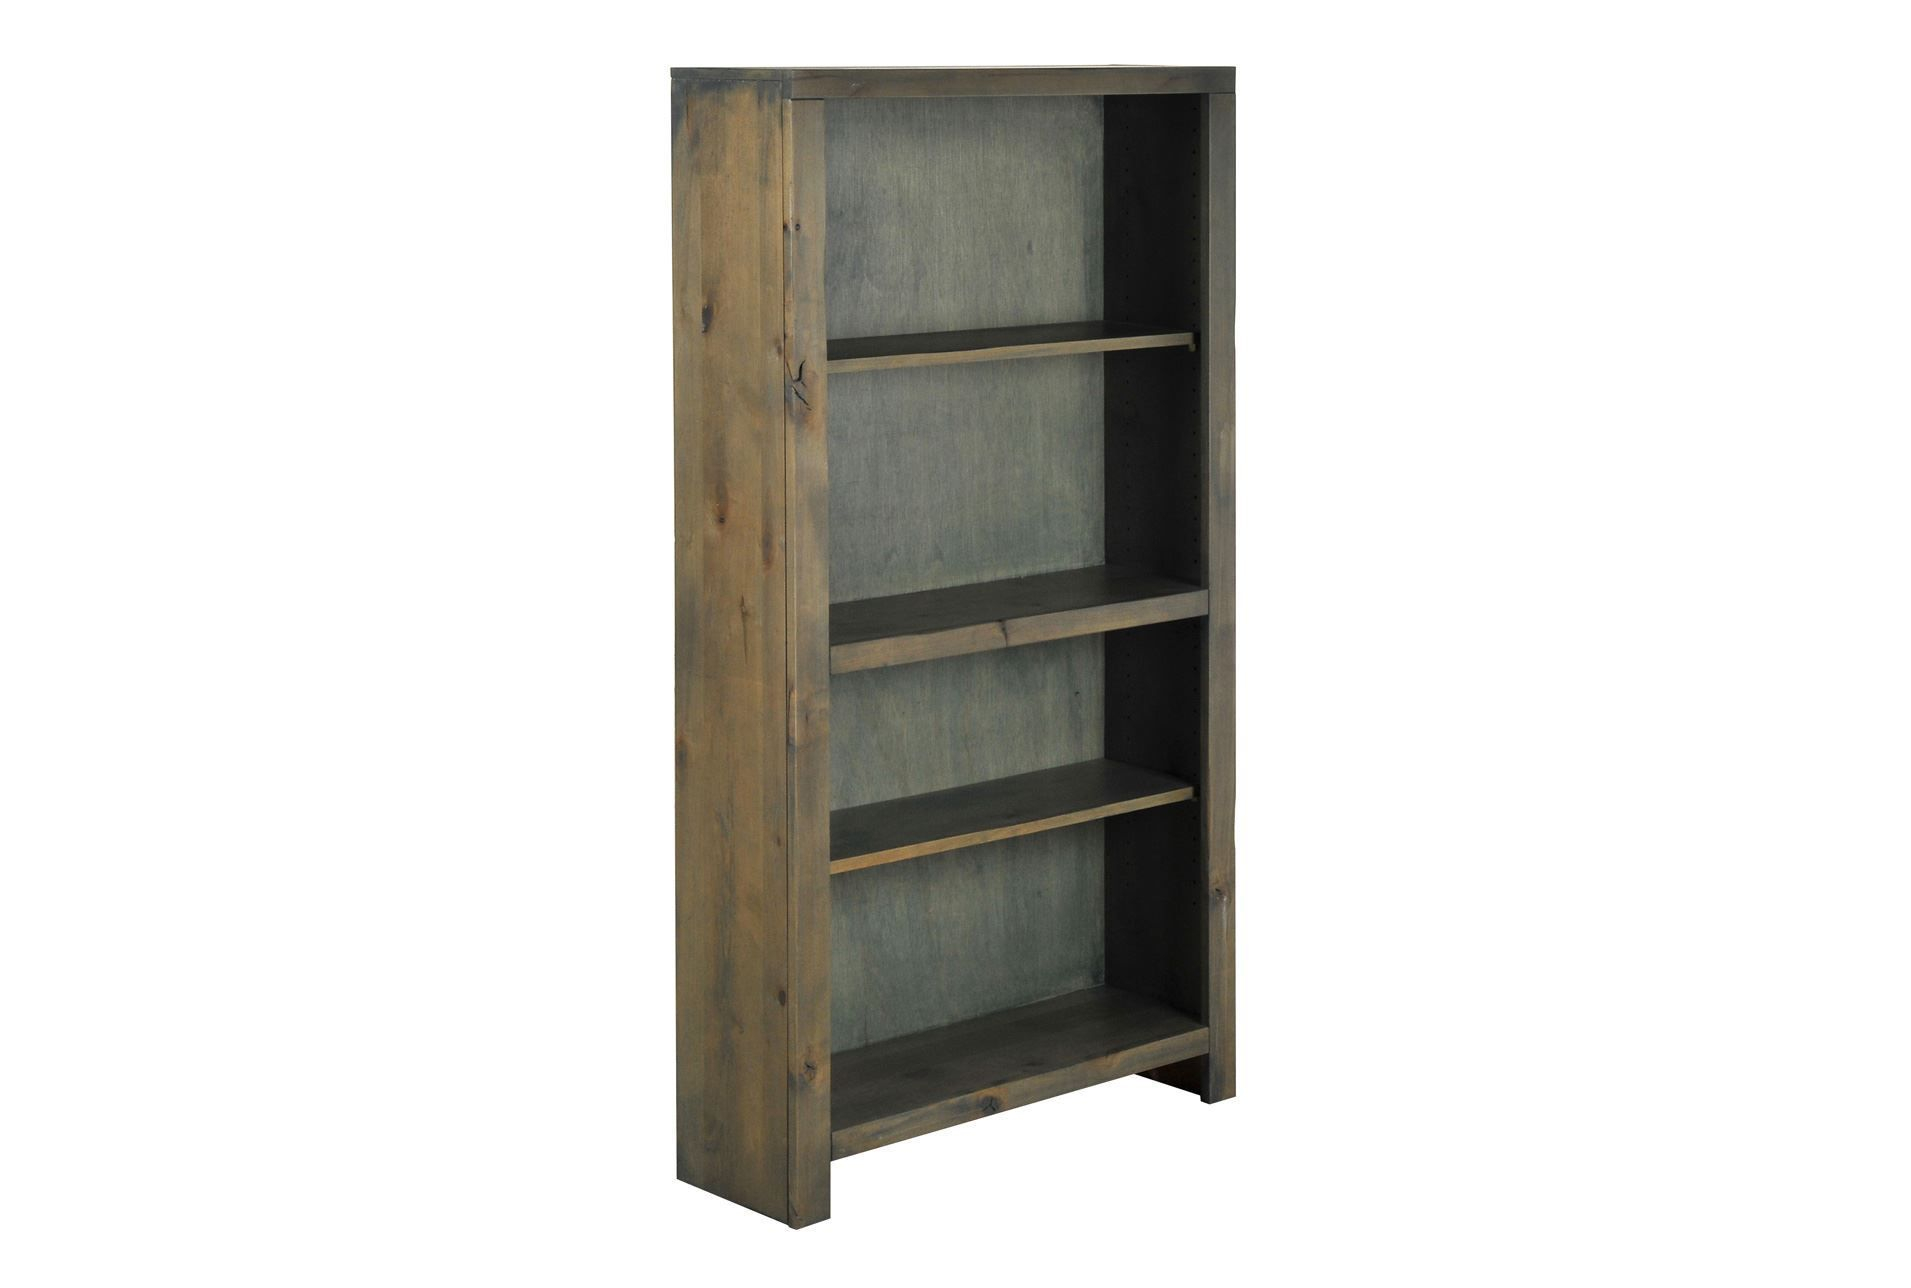 Ducar 60 Inch Tall Bookcase Home Office Bookcase Home intended for proportions 1911 X 1288